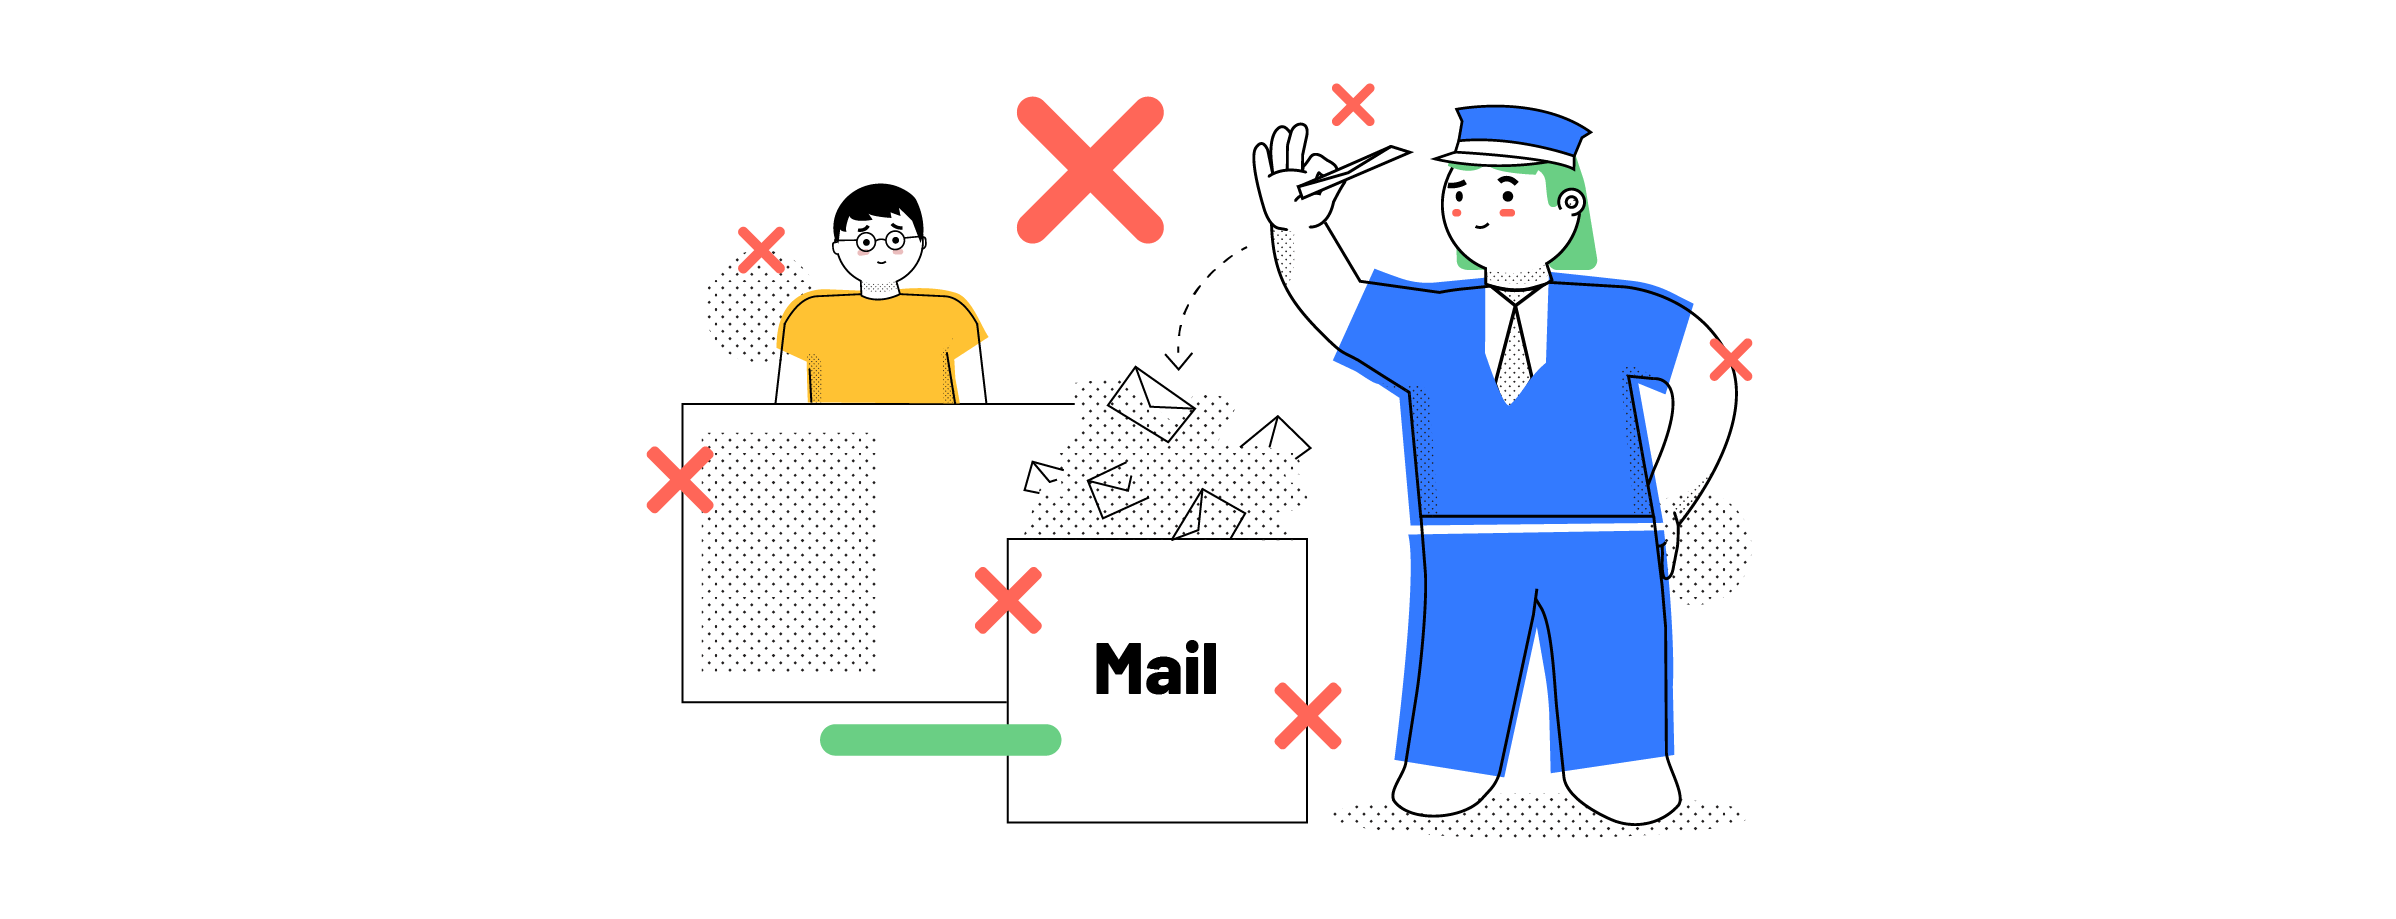 Mail delivery in front of the reception